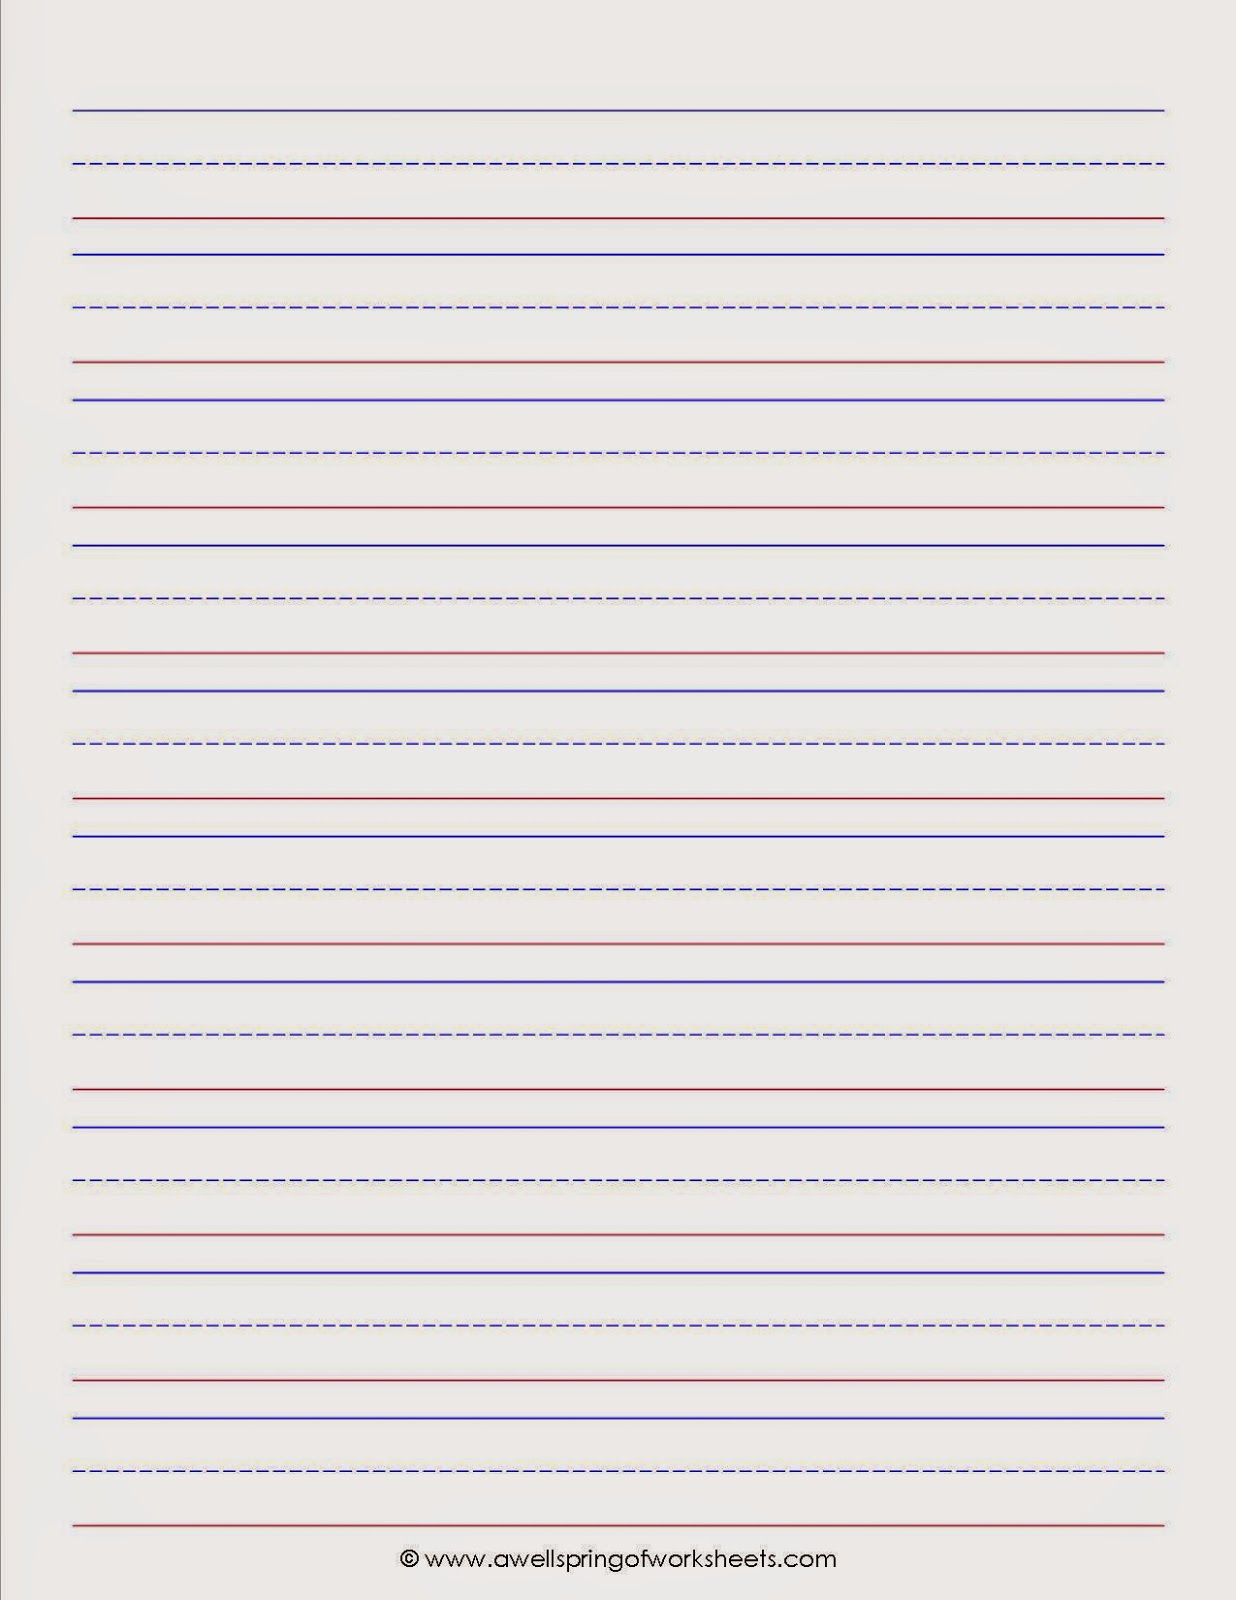 Custom handwriting paper